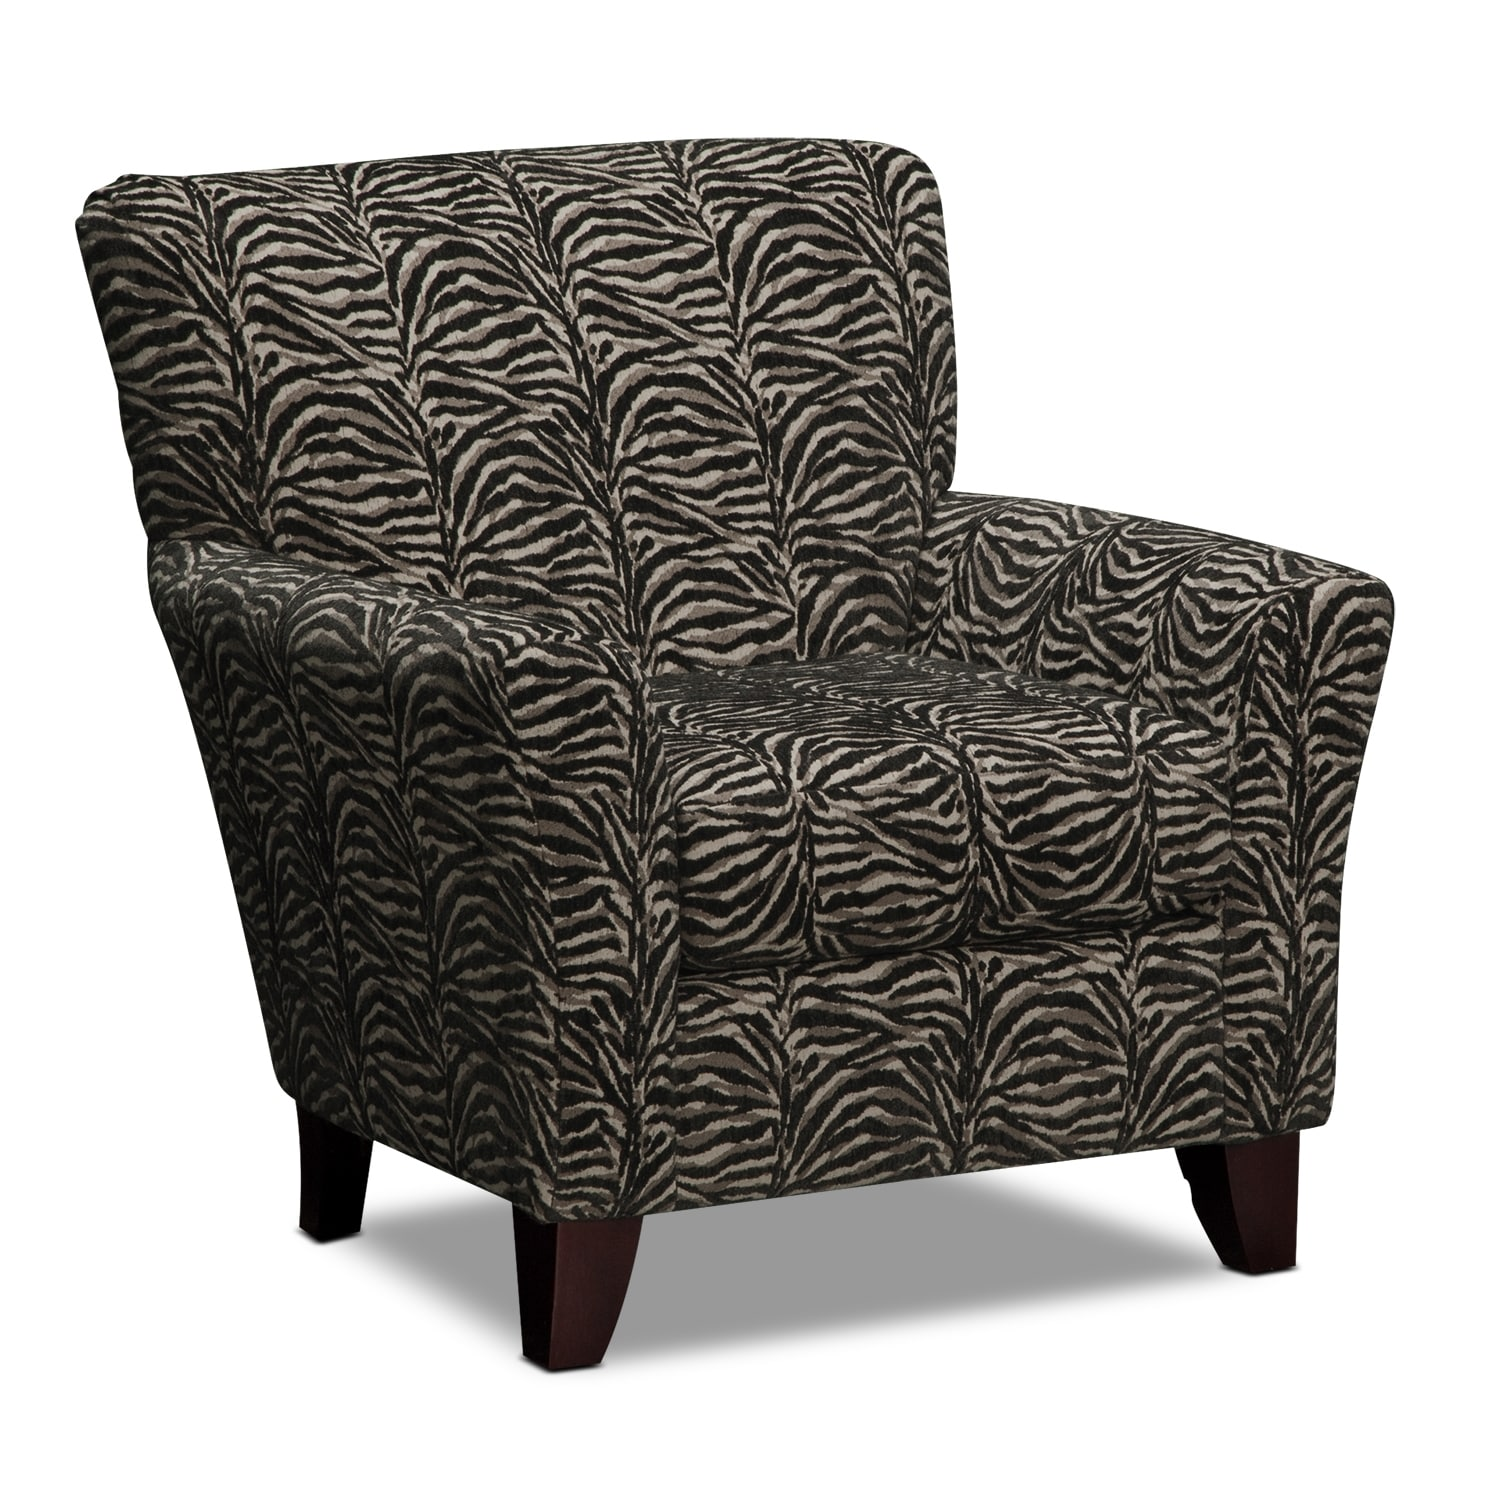 Living Room Furniture - Kampala Accent Chair